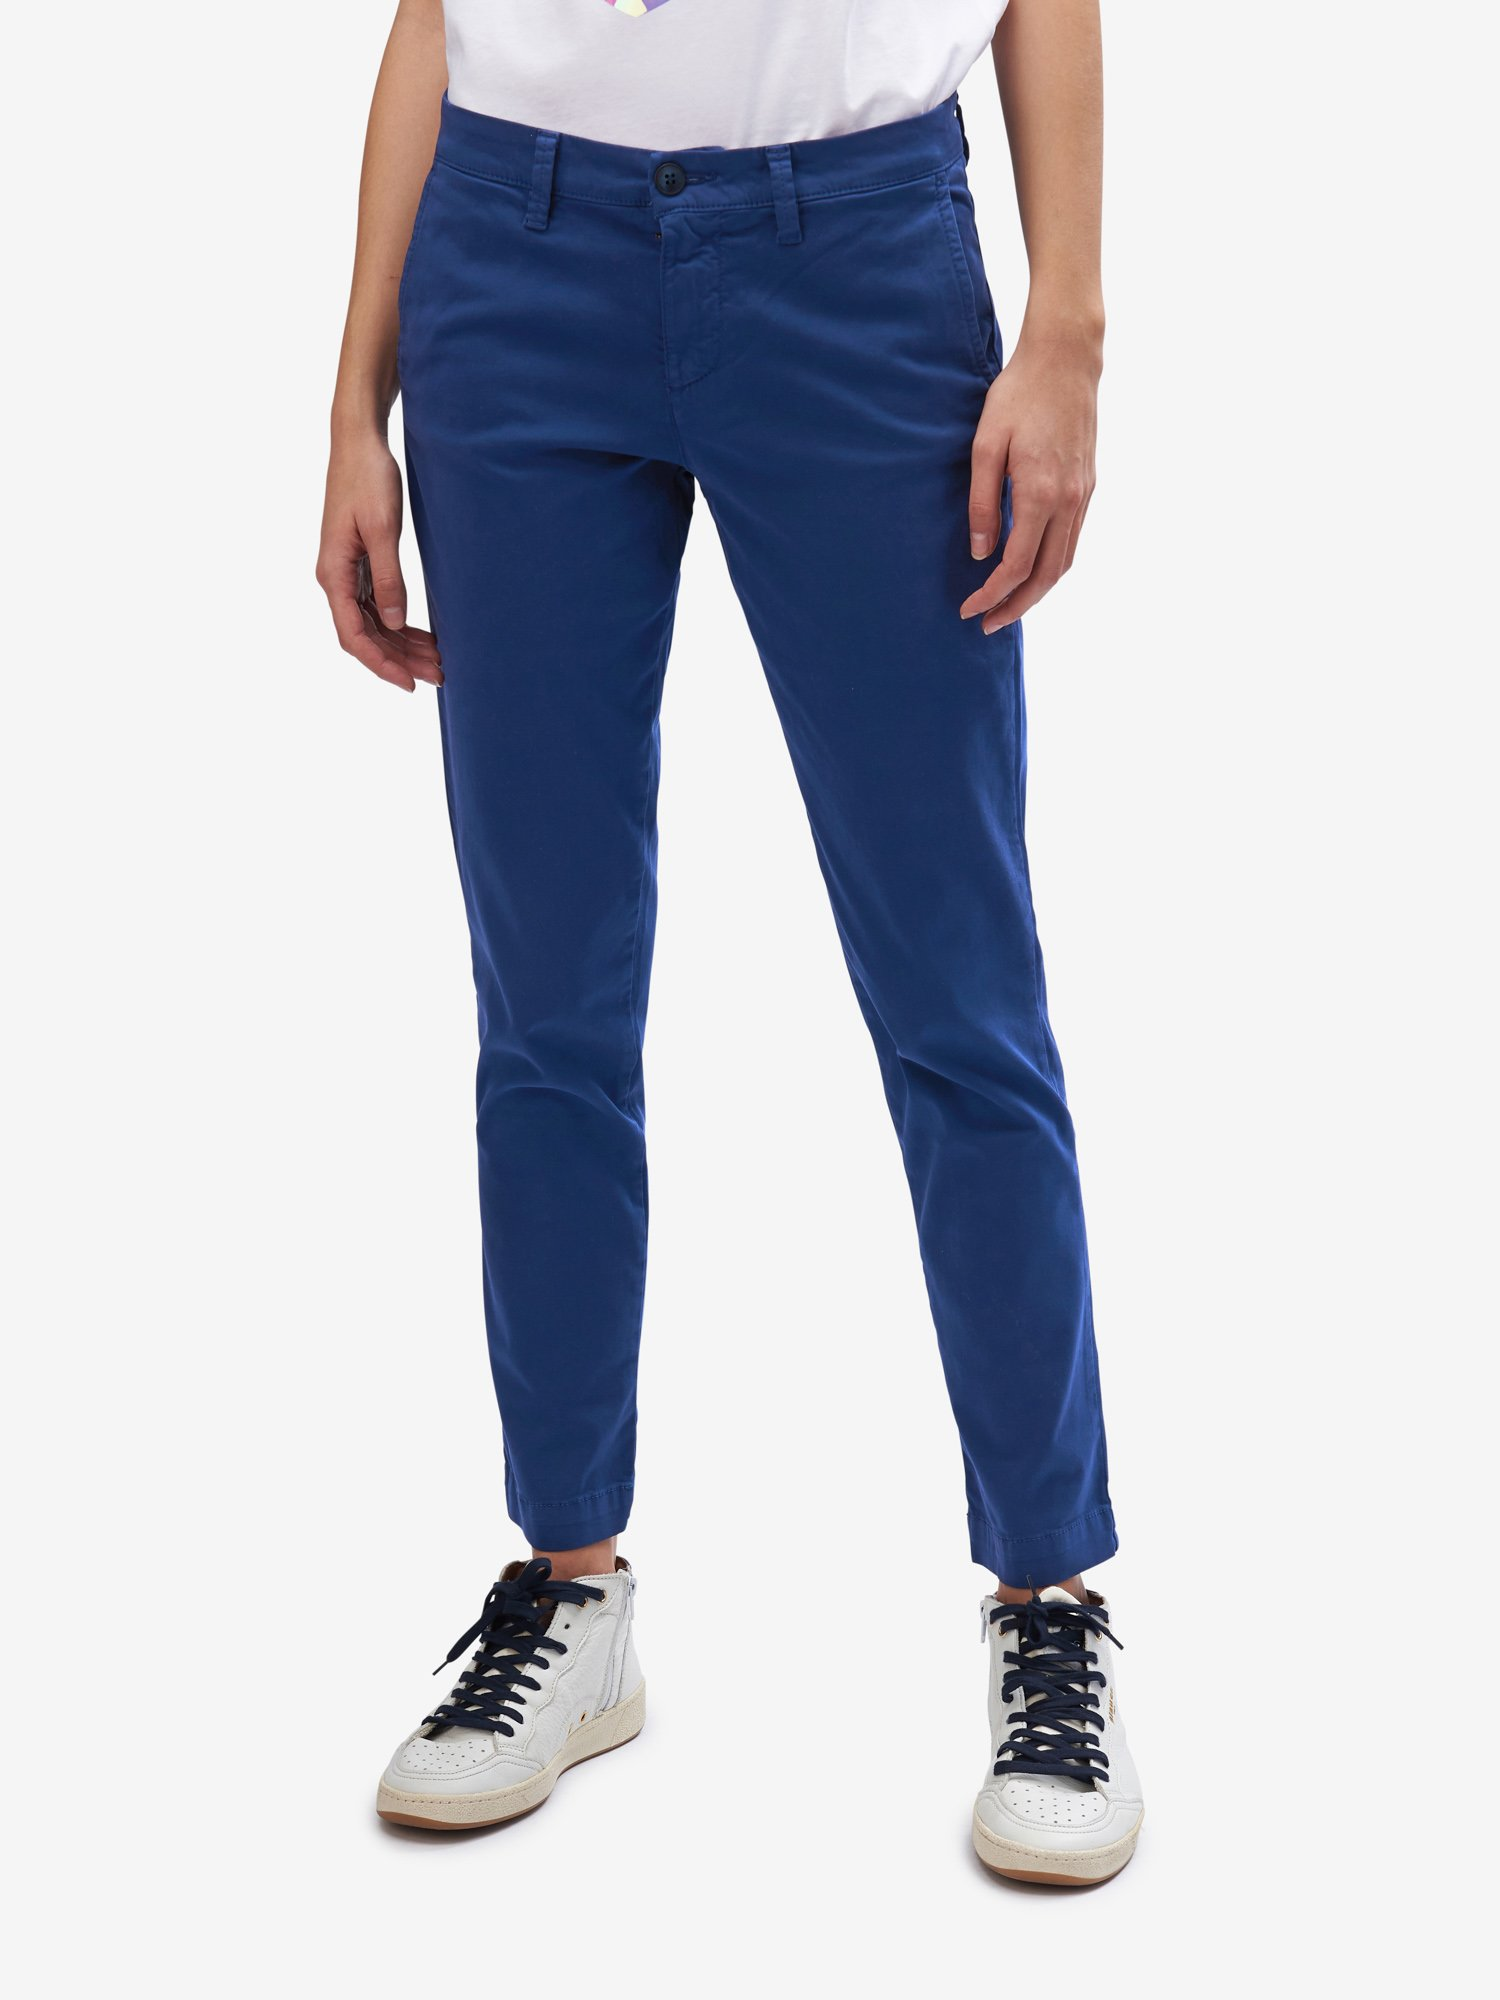 LONG SATIN TROUSERS - Blauer